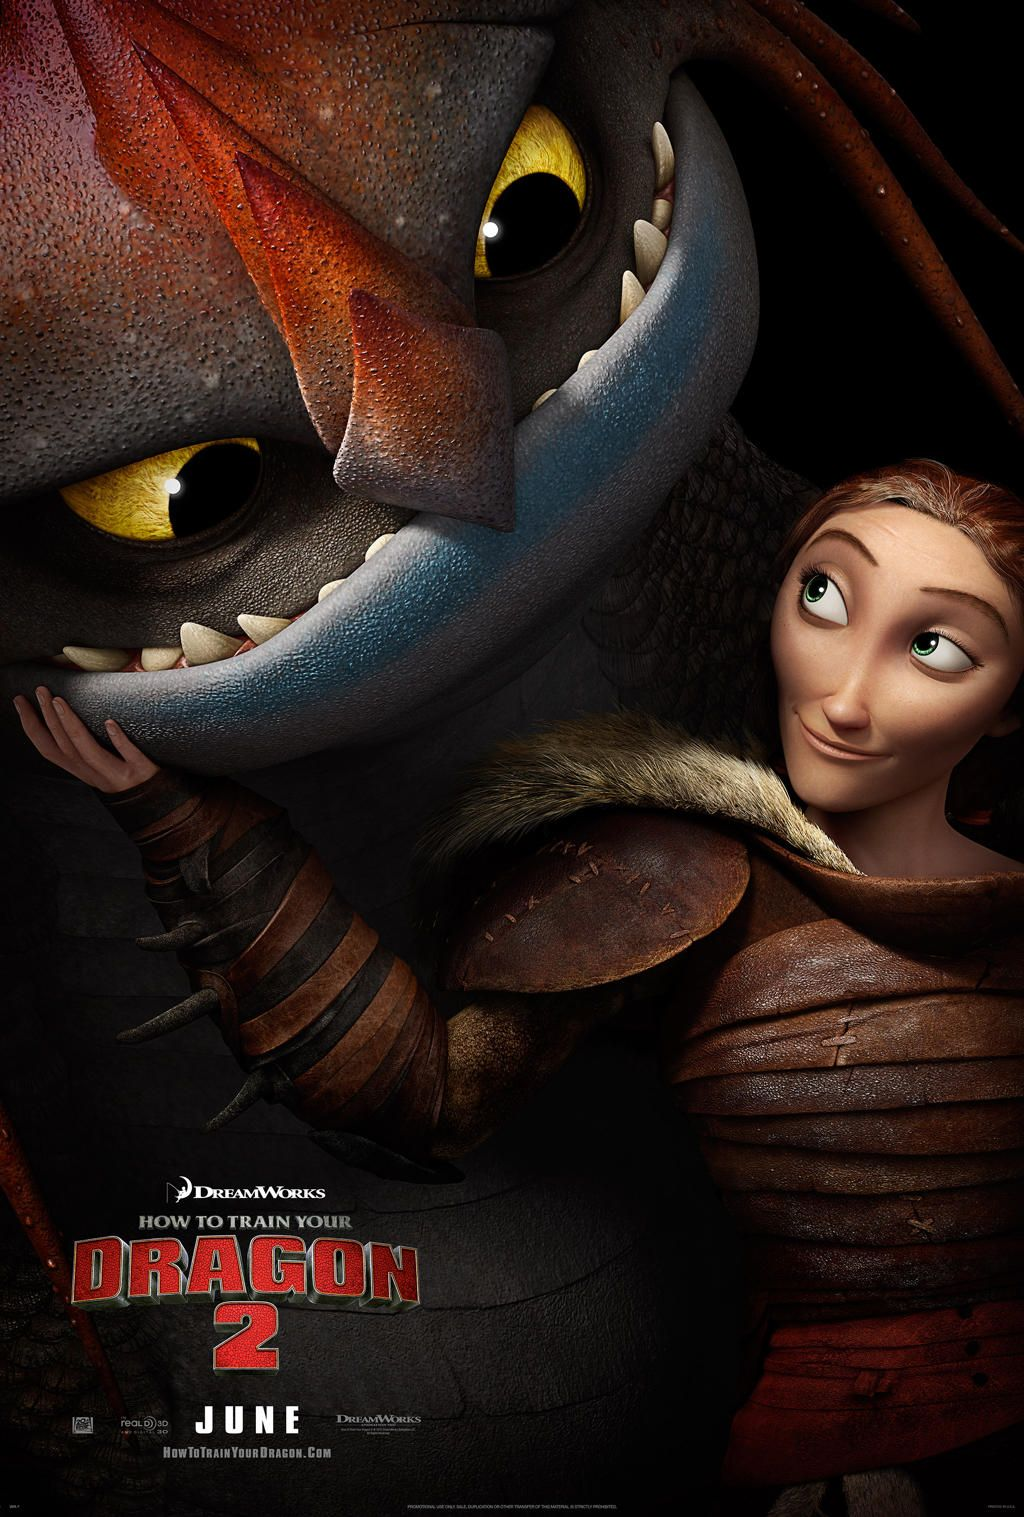 How To Train Your Dragon 2 Very Beautiful Movie And